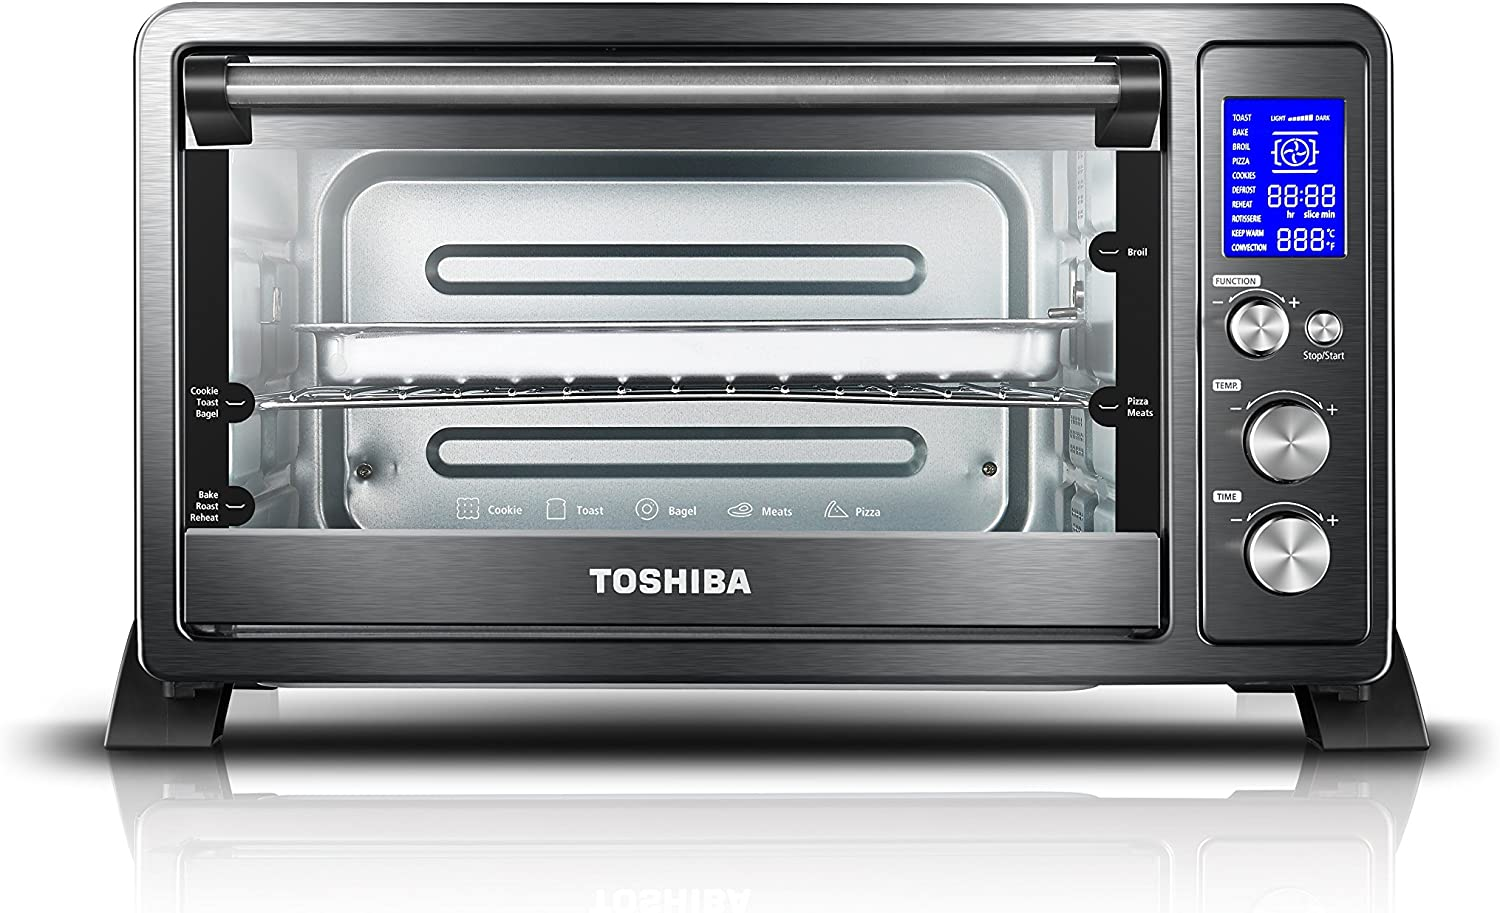 Toshiba AC25CEW-BS Digital Toaster Oven with Convection cooking and 9 Functions, 1500W, 6-Slice Bread/12-Inch Pizza, Black Stainless Steel